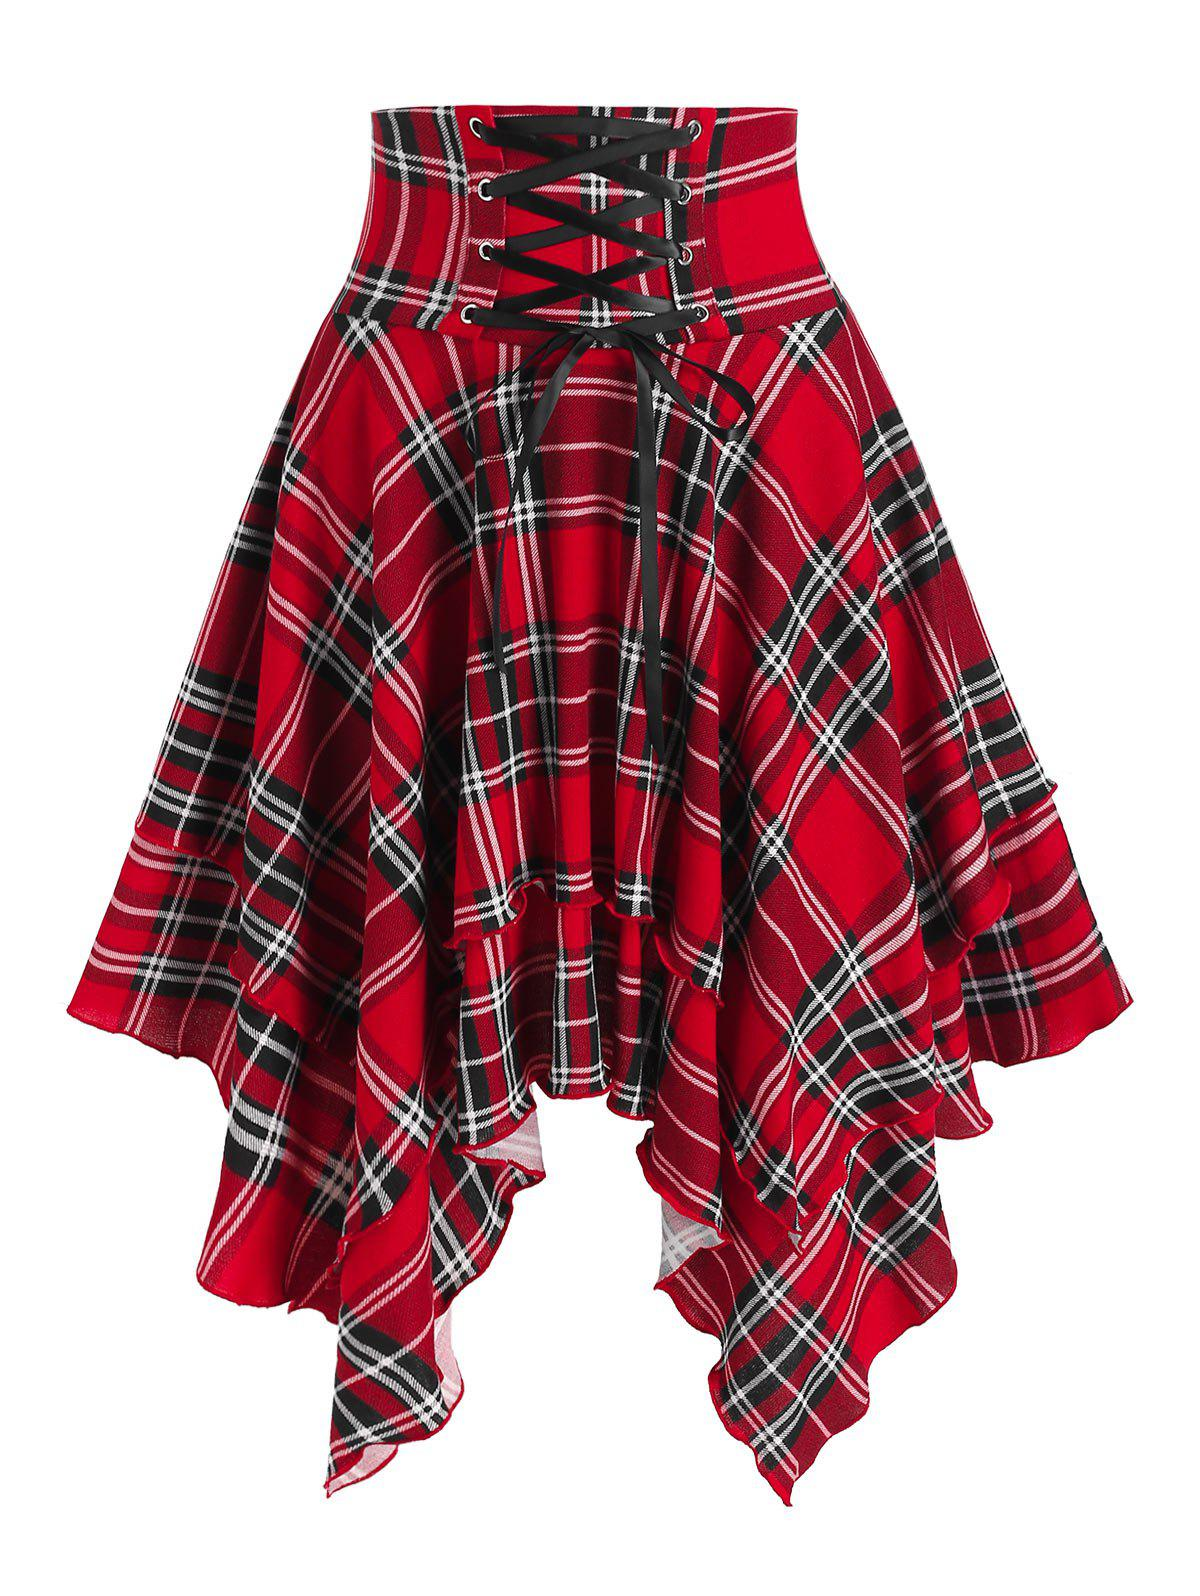 Plaid Print Lace-up Layered Handkerchief Skirt - RED M